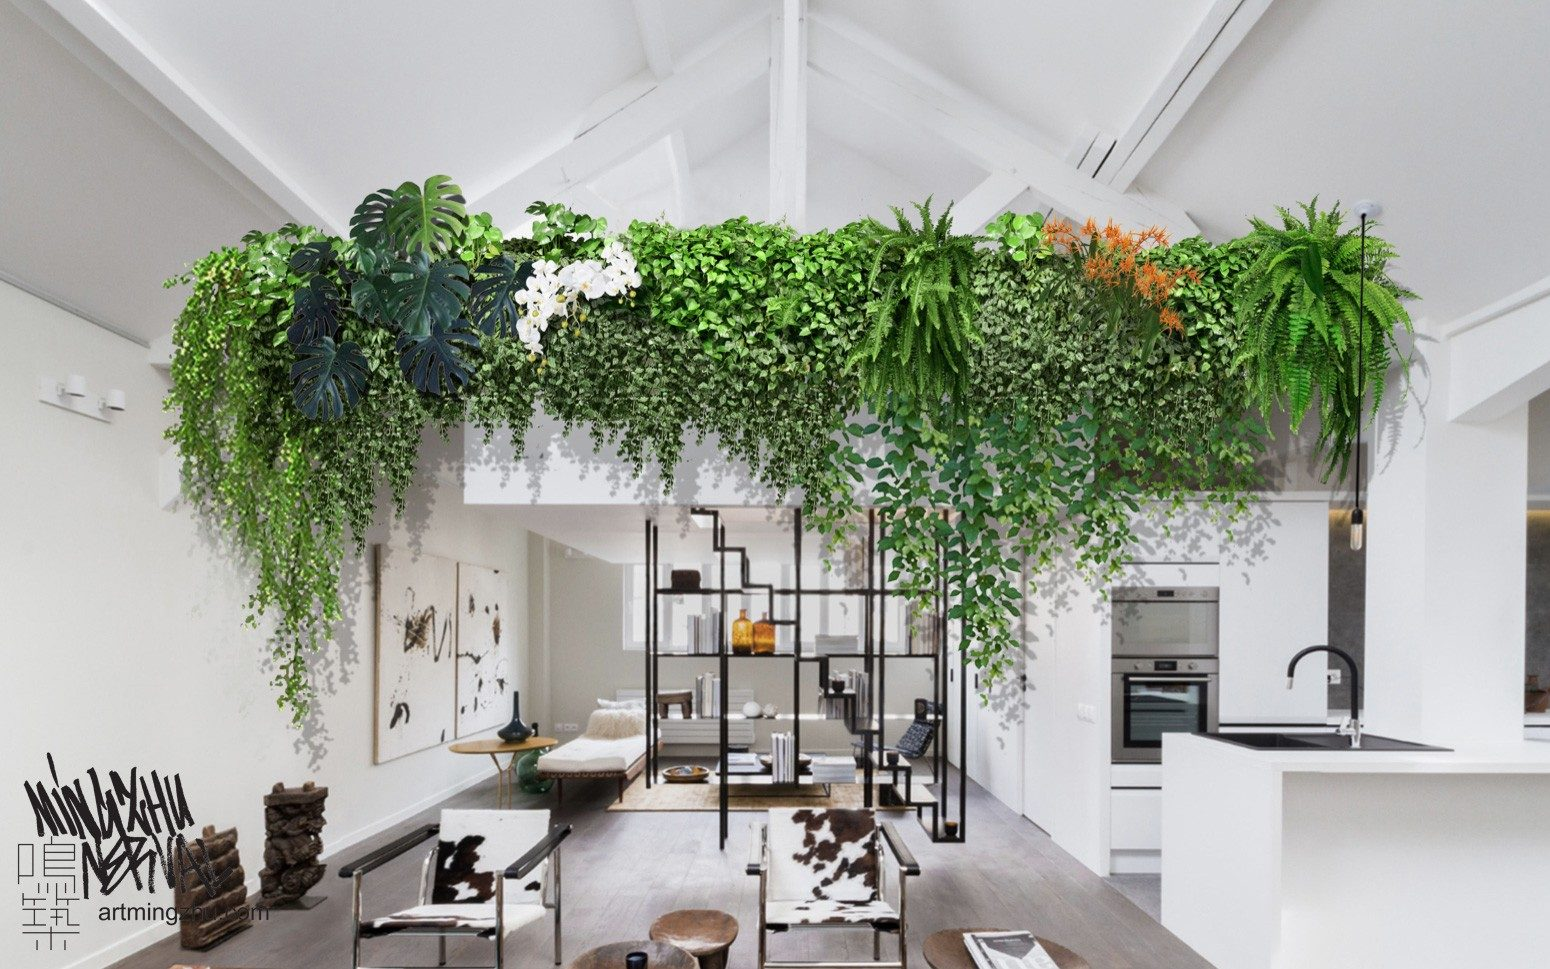 At Mingzhu Nerval, we thrive at creating the most beautiful vertical gardens in the world. For this private apartment, we are creating a living wall design – Paris, 2021.